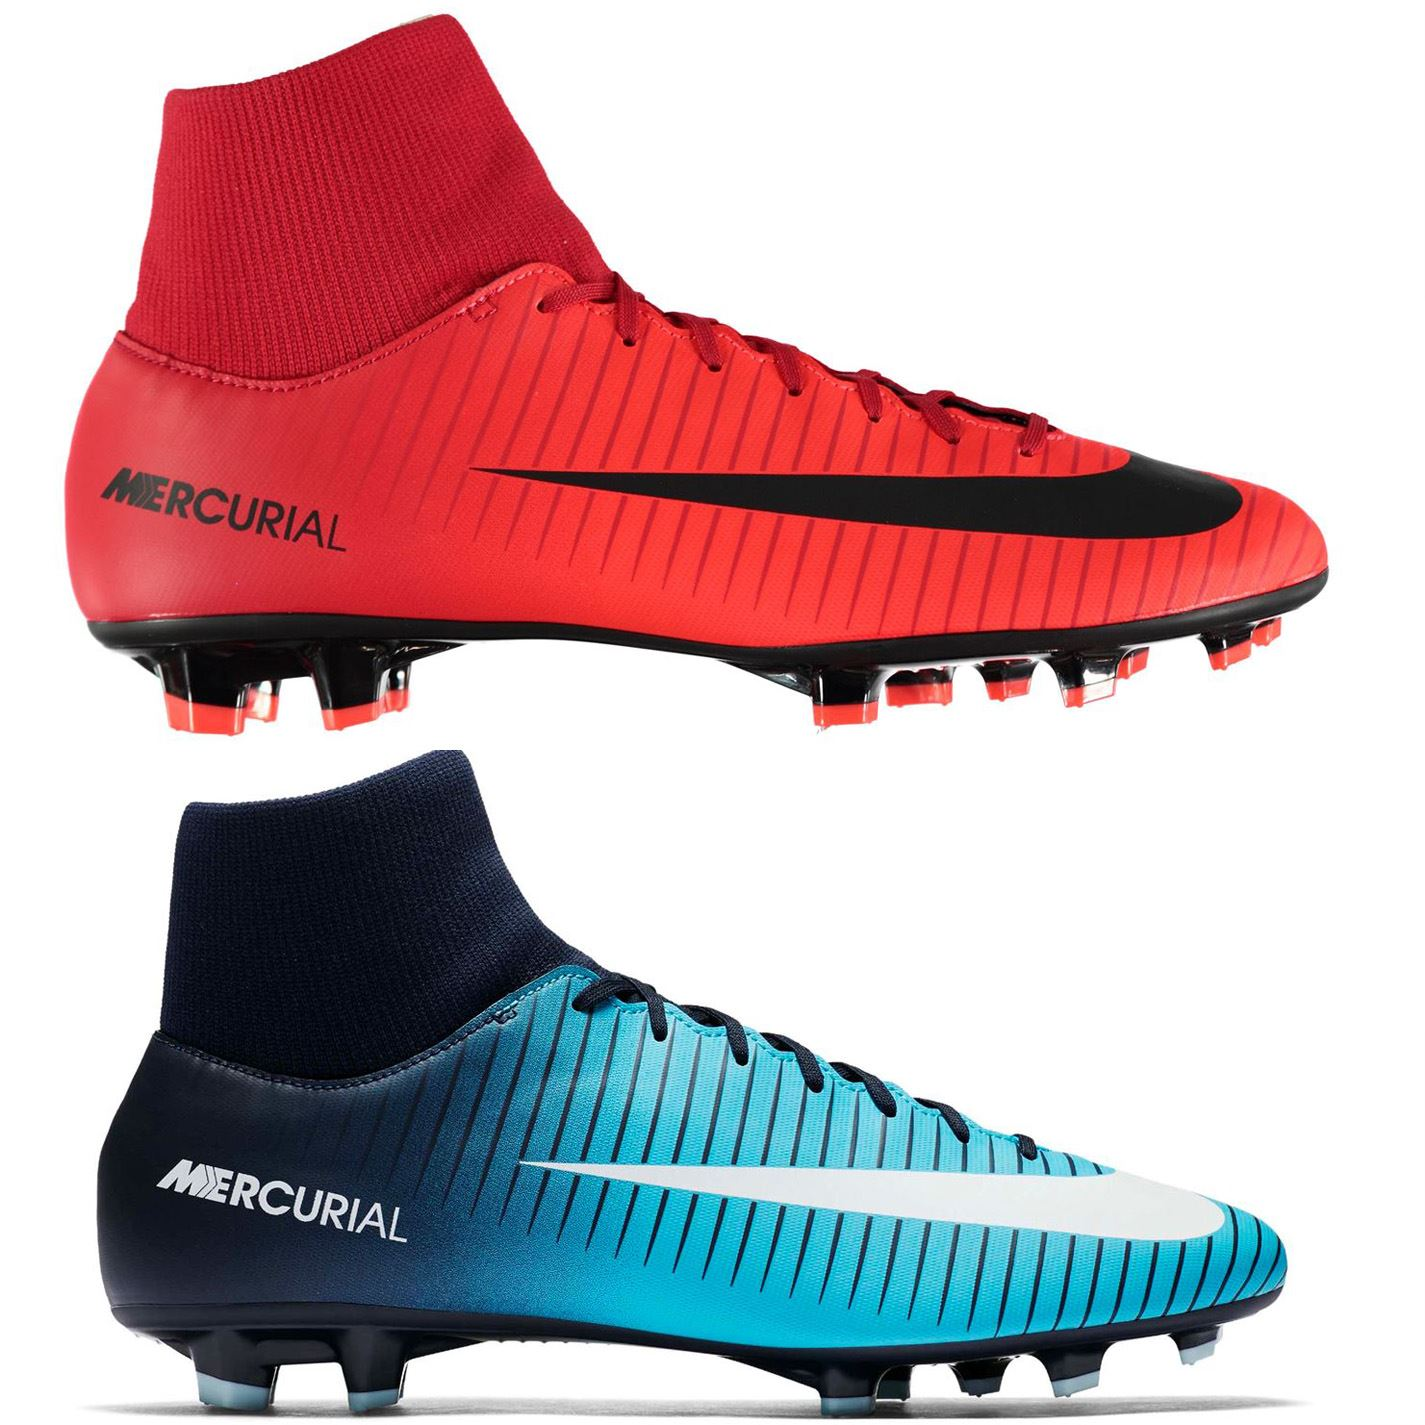 6c56b1fa9934 Nike Mercurial Victory DF FG Firm Ground Football Boots Mens Soccer Shoe  Cleats